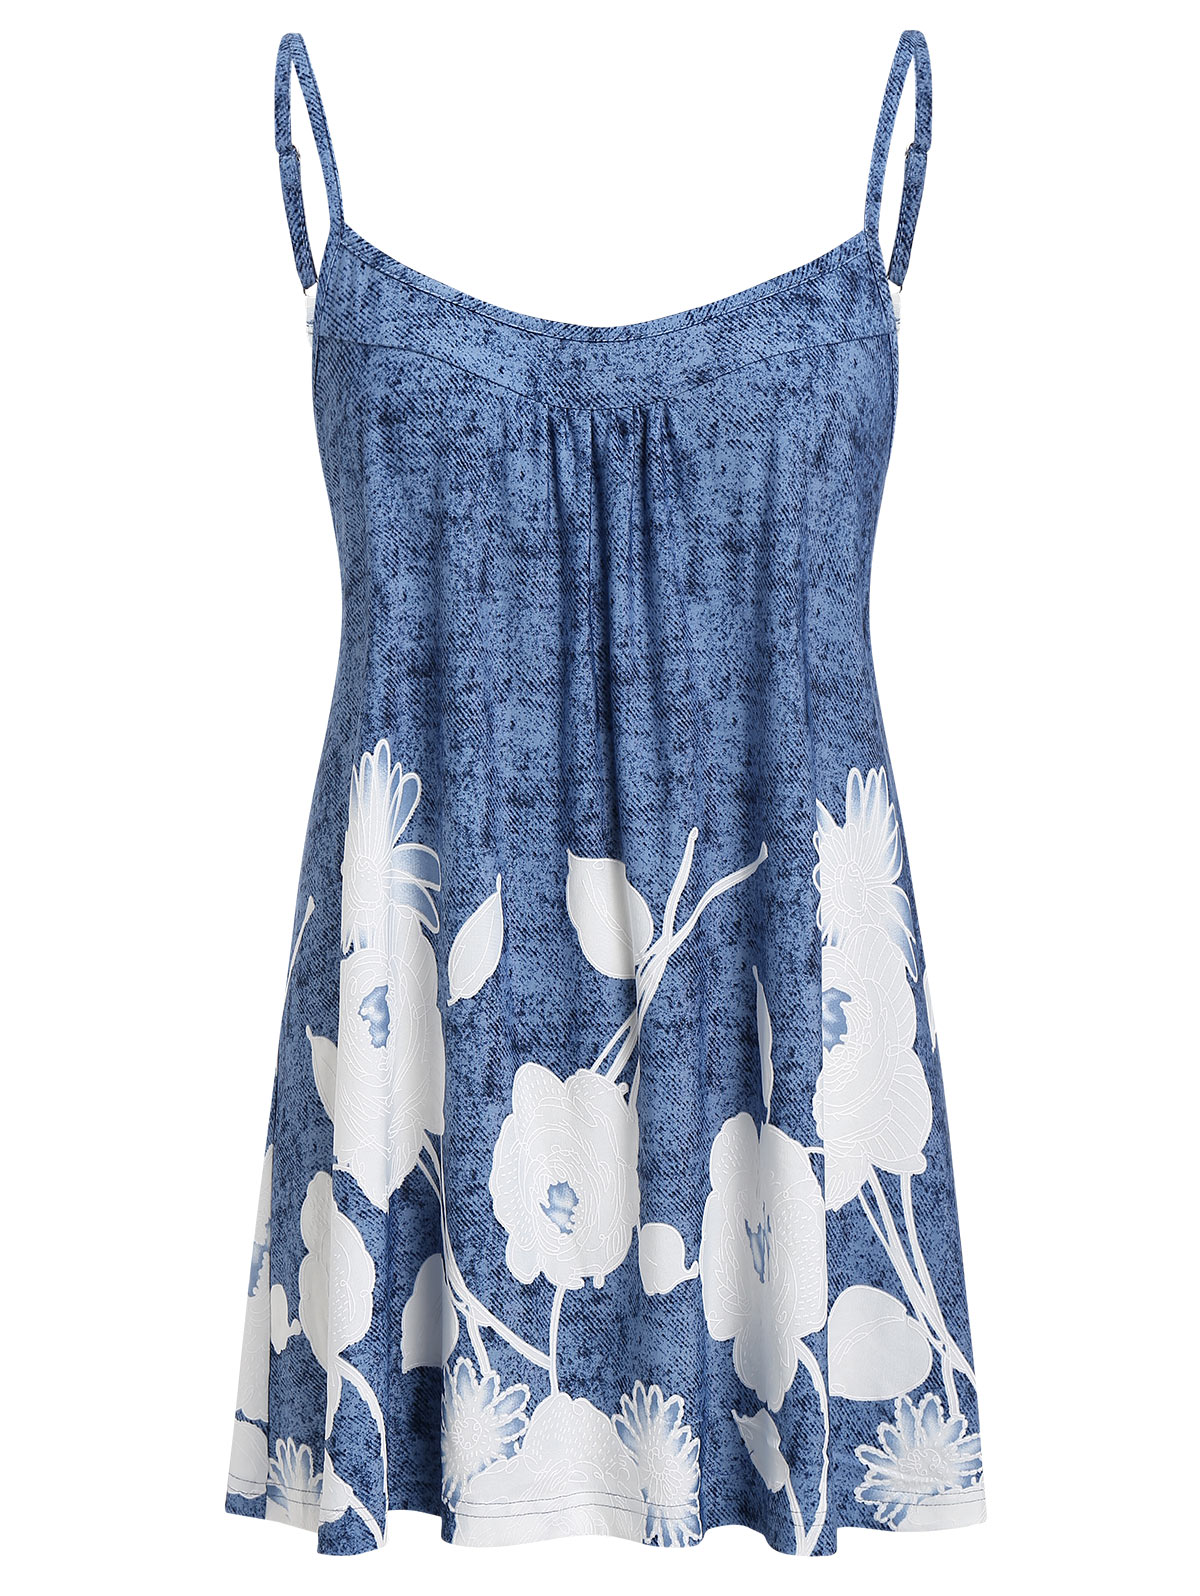 Wipalo Women Plus Size Spaghetti Strap Floral Print Camis Tops Spaghetti Strap Casual Summer Camis Top Big Size 5XL Ladies Tops